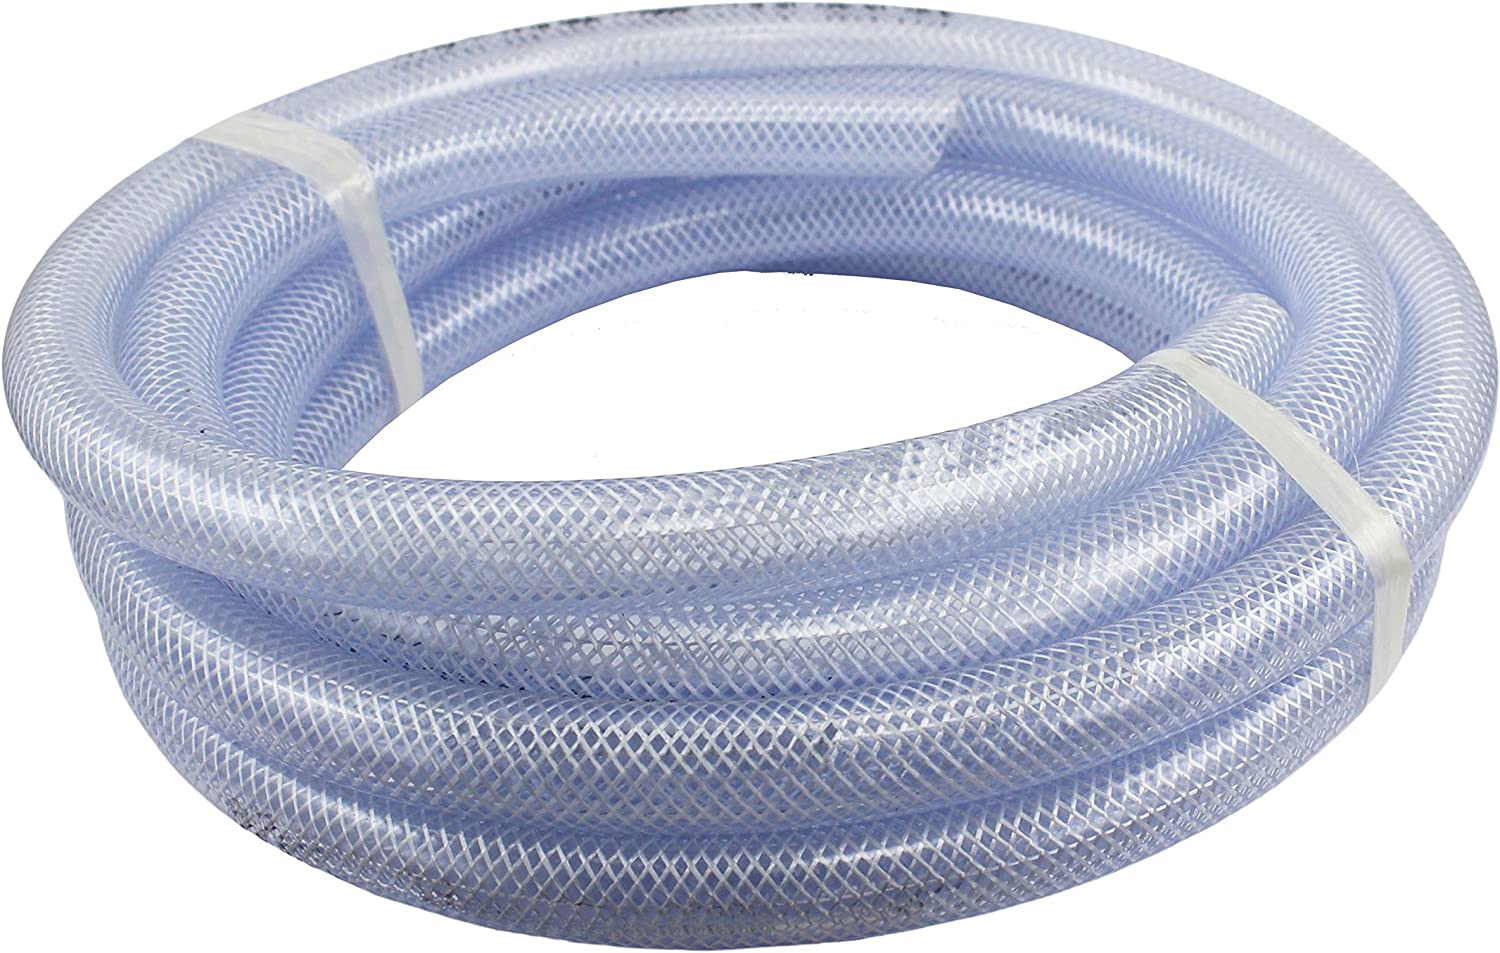 "Duda Energy HPpvc038-025ft 25' x 3/8"" ID High Pressure Braided Clear Flexible PVC Tubing Heavy Duty UV Chemical Resistant Vinyl Hose"